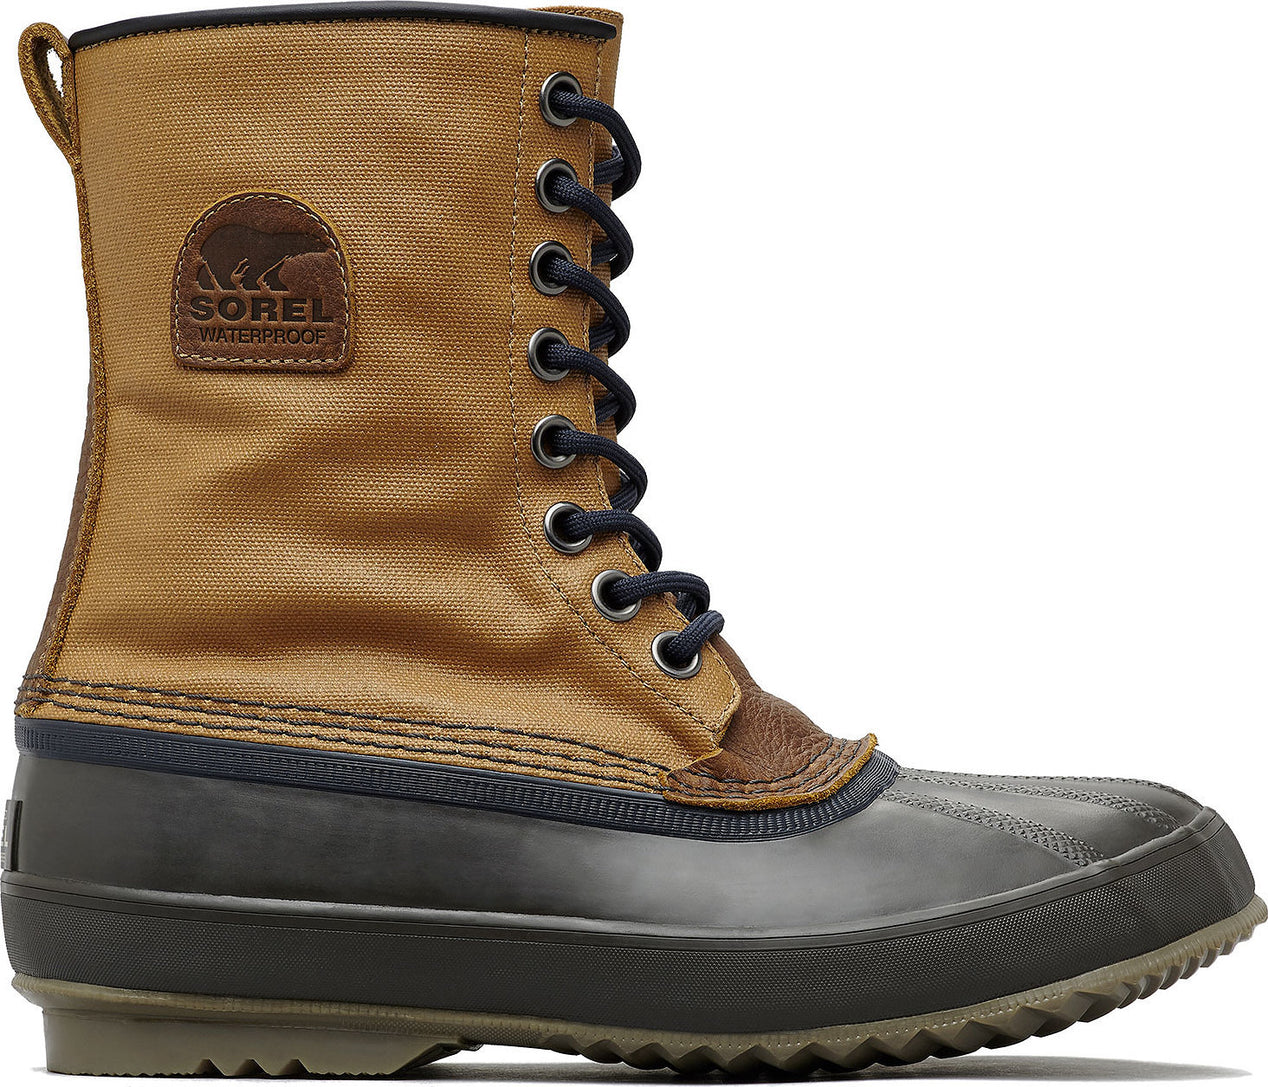 26b9981c9074 Sorel Men s 1964 Premium T Cvs Waterproof Boots -40f -40c